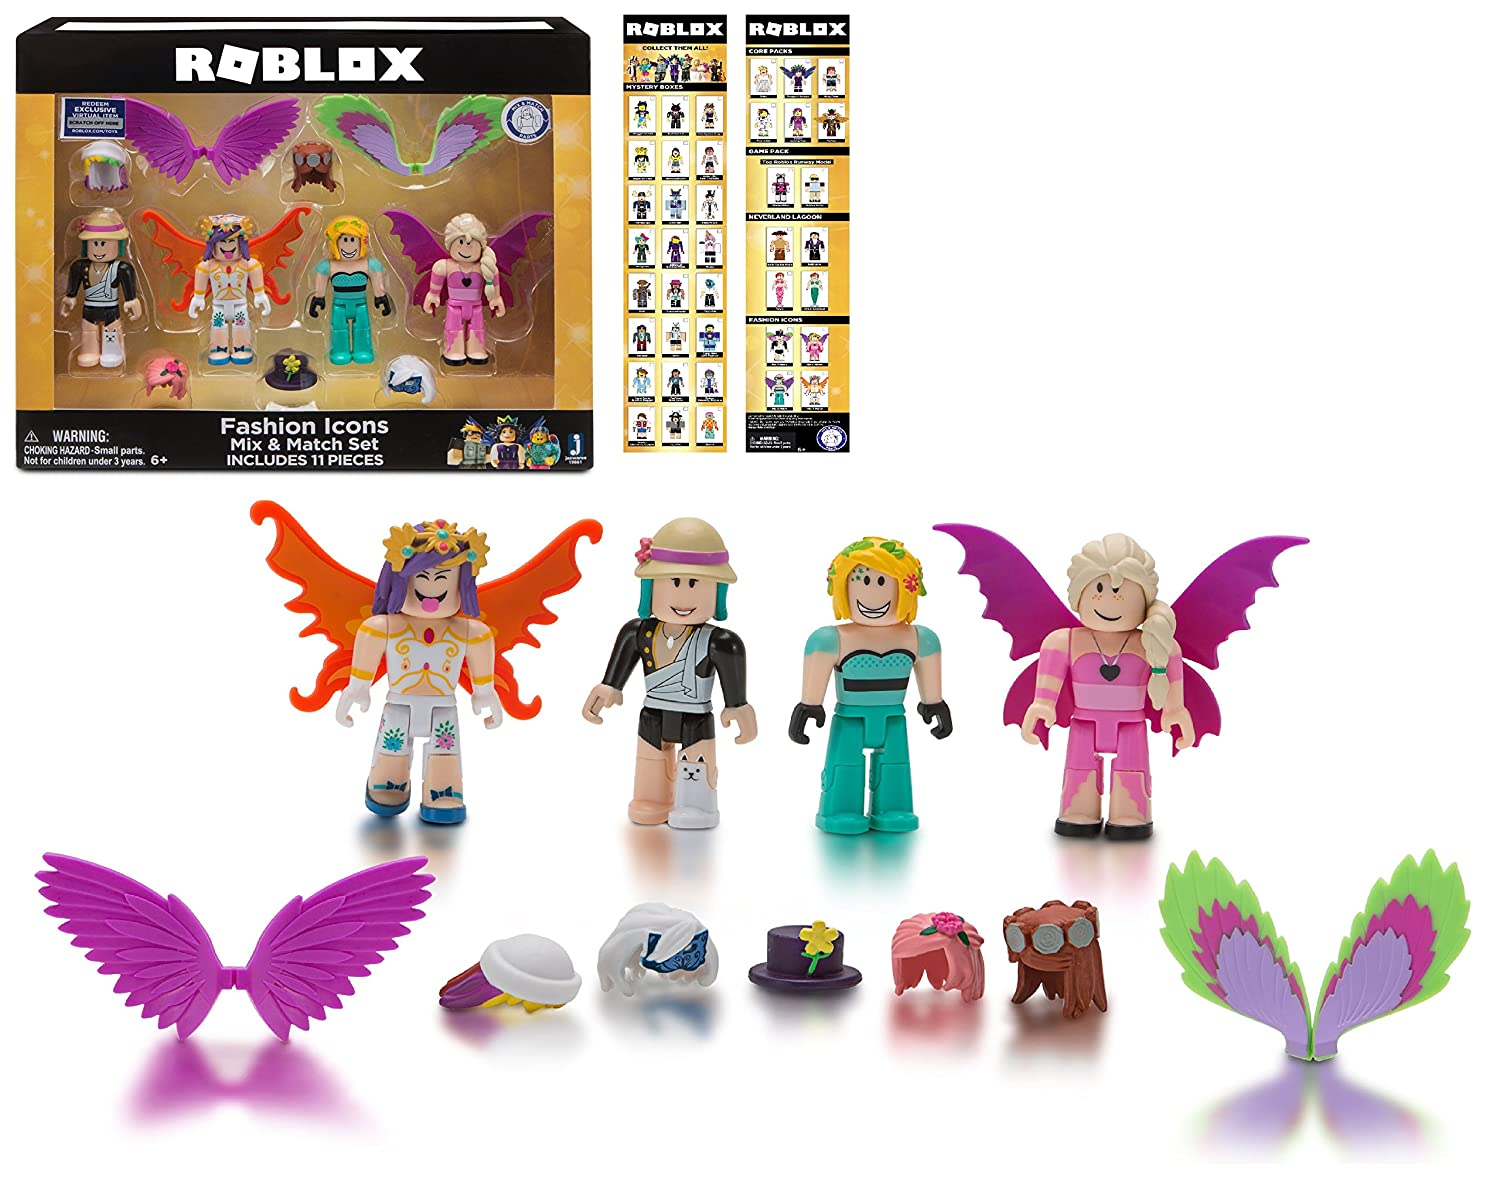 NEW! EXCLUSIVE Roblox - FASHION ICONS MIX & MATCH SET - Celebrity  Collection, Includes 11 Pieces (Walmart Exclusive)